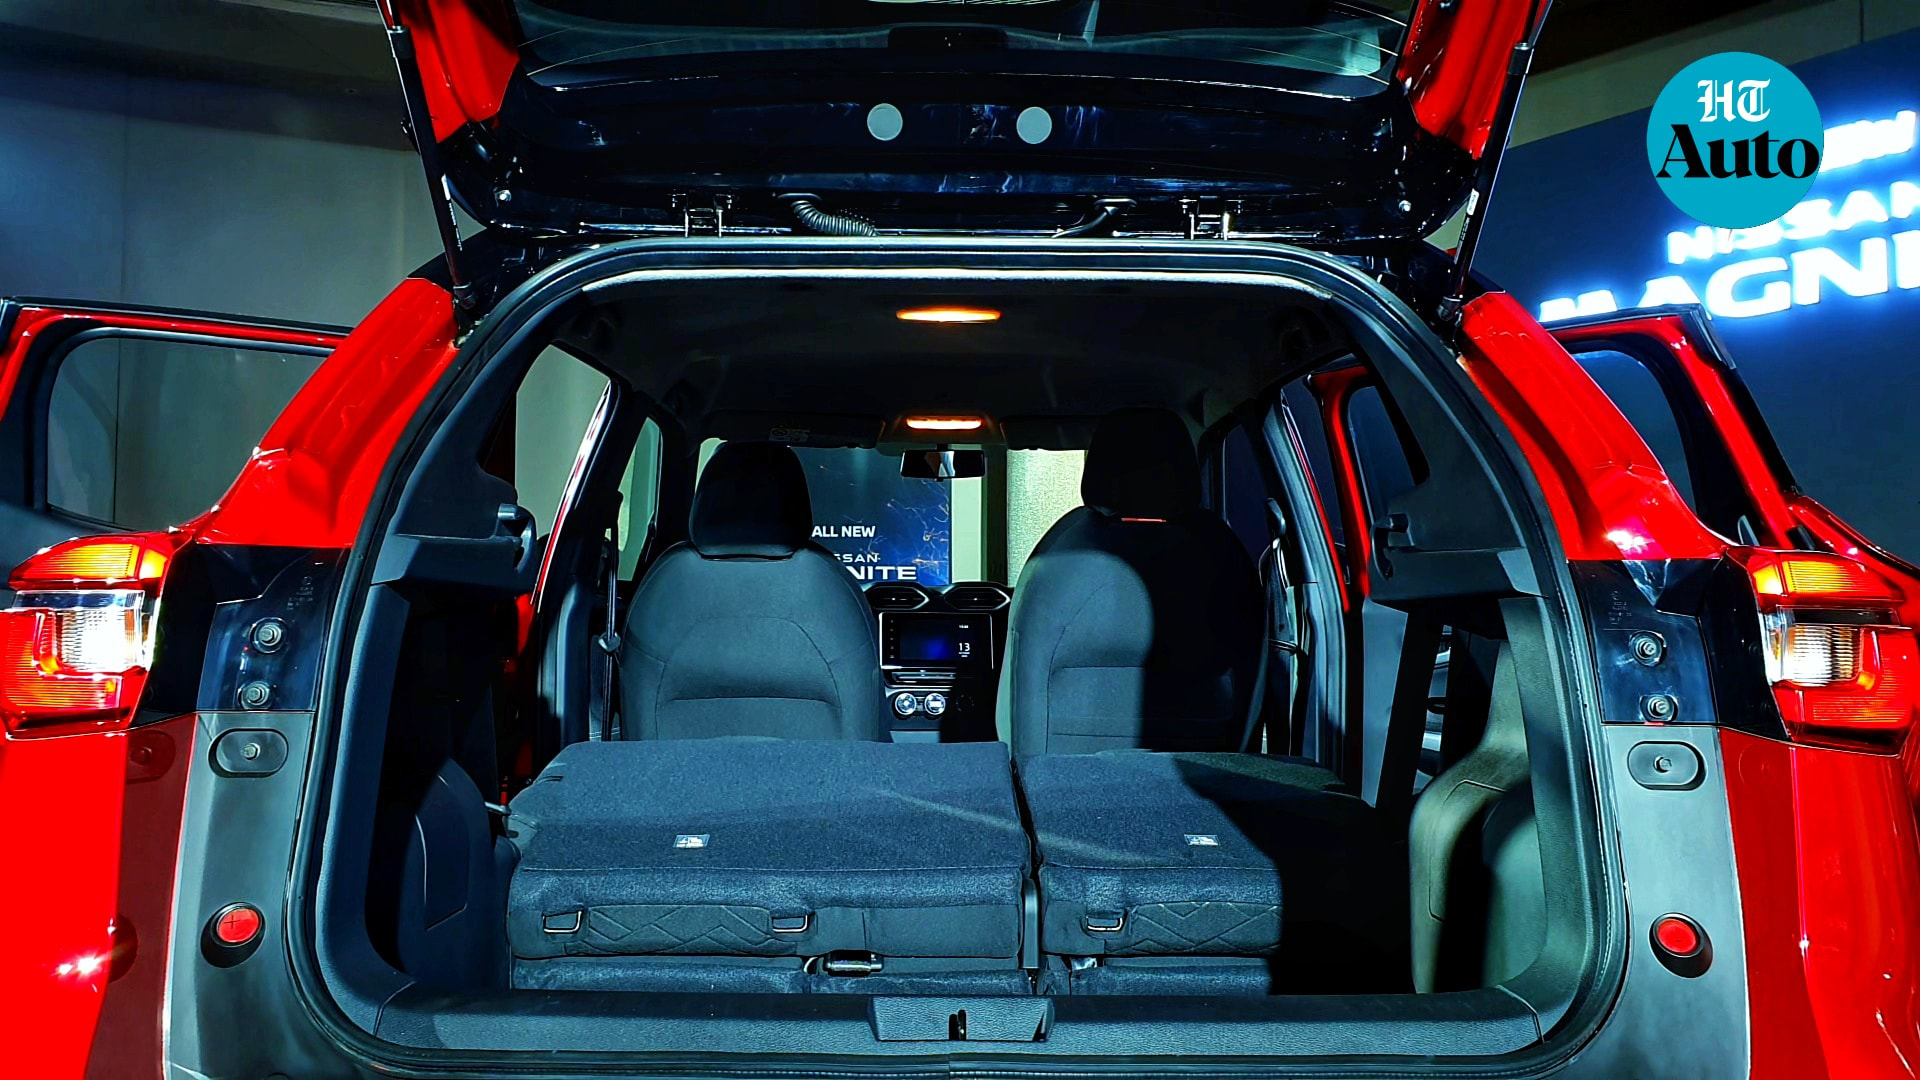 There is 336 litres of cargo space - the rear seats can be folded in 60:40 split - which is sufficient for a vehicle in this segment. (HT Auto/Sabyasachi Dasgupta)